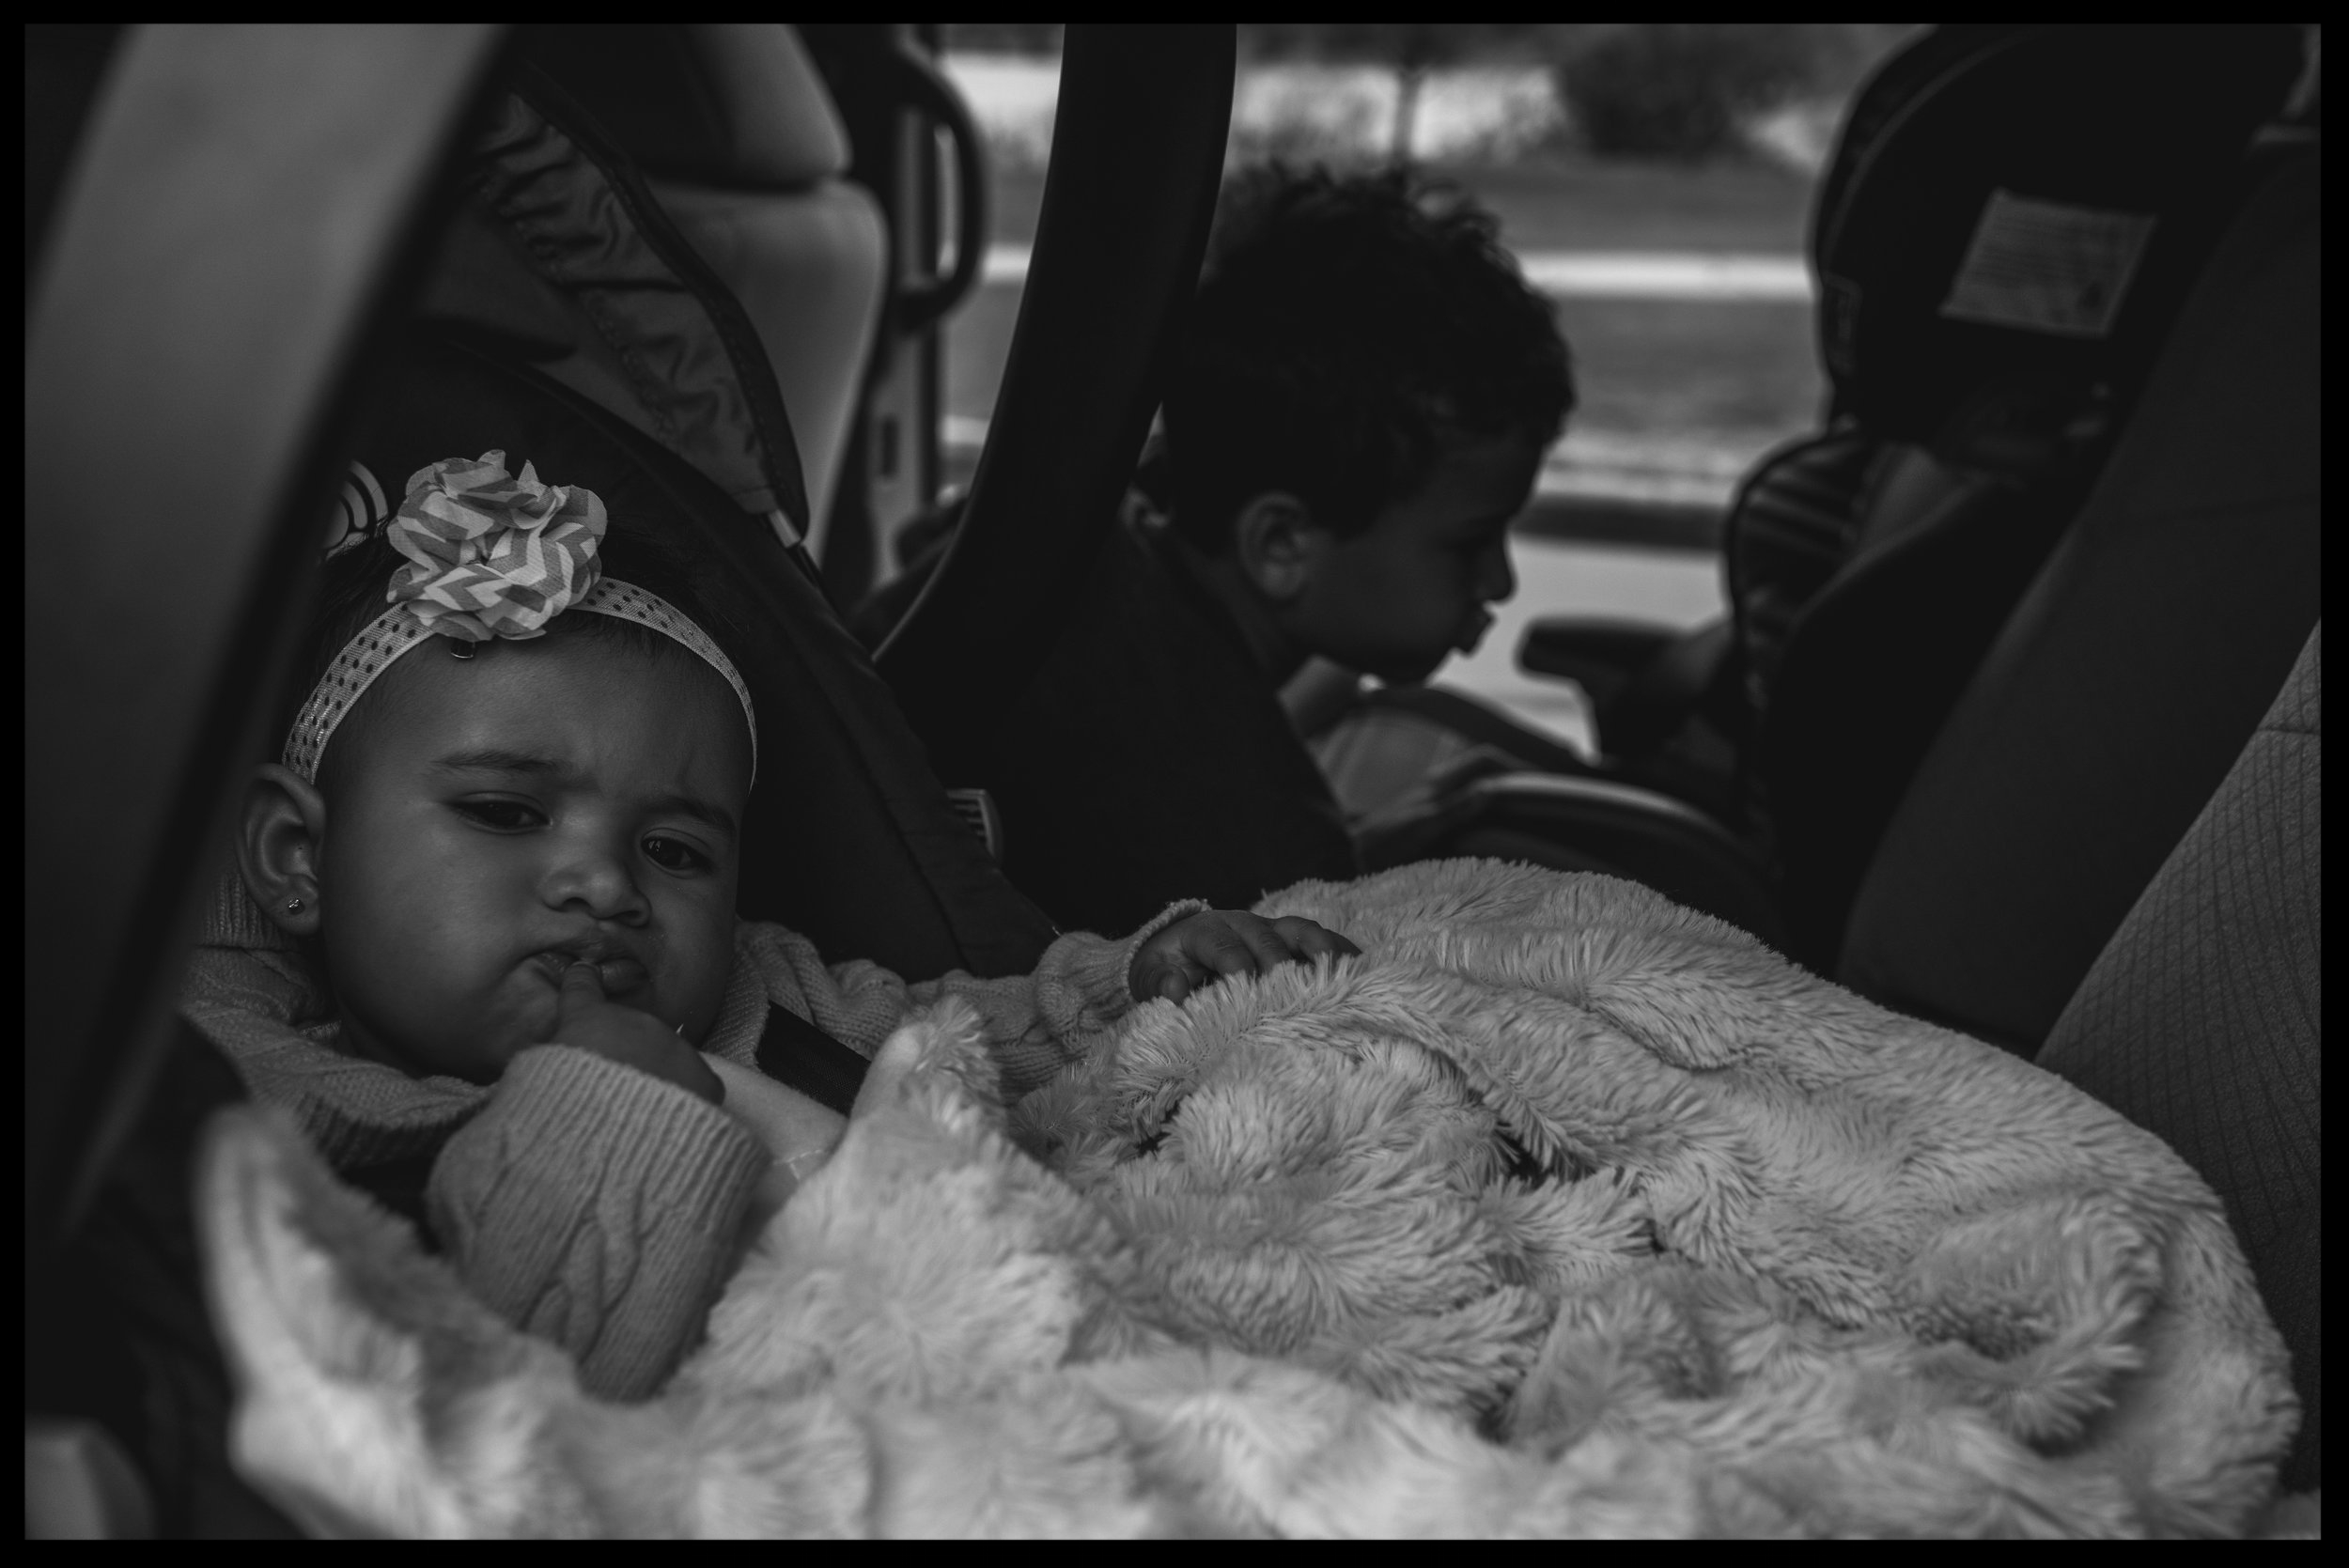 Two kids in the car waiting to go, making cute faces, black and white